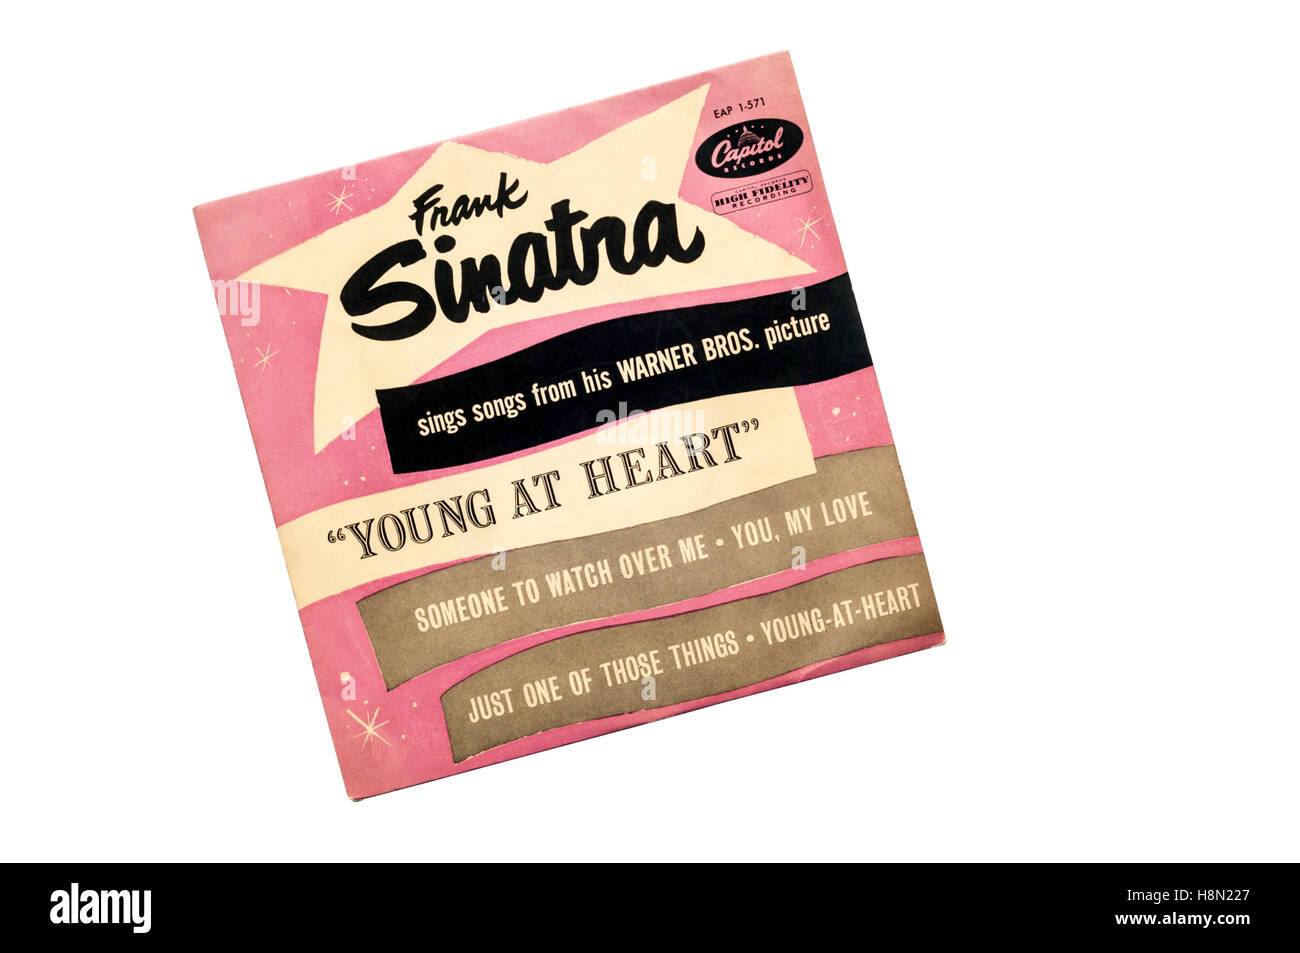 EP of  Frank Sinatra Sings Songs From His Warner Bros. Picture 'Young At Heart' released in 1955 by Capital - Stock Image